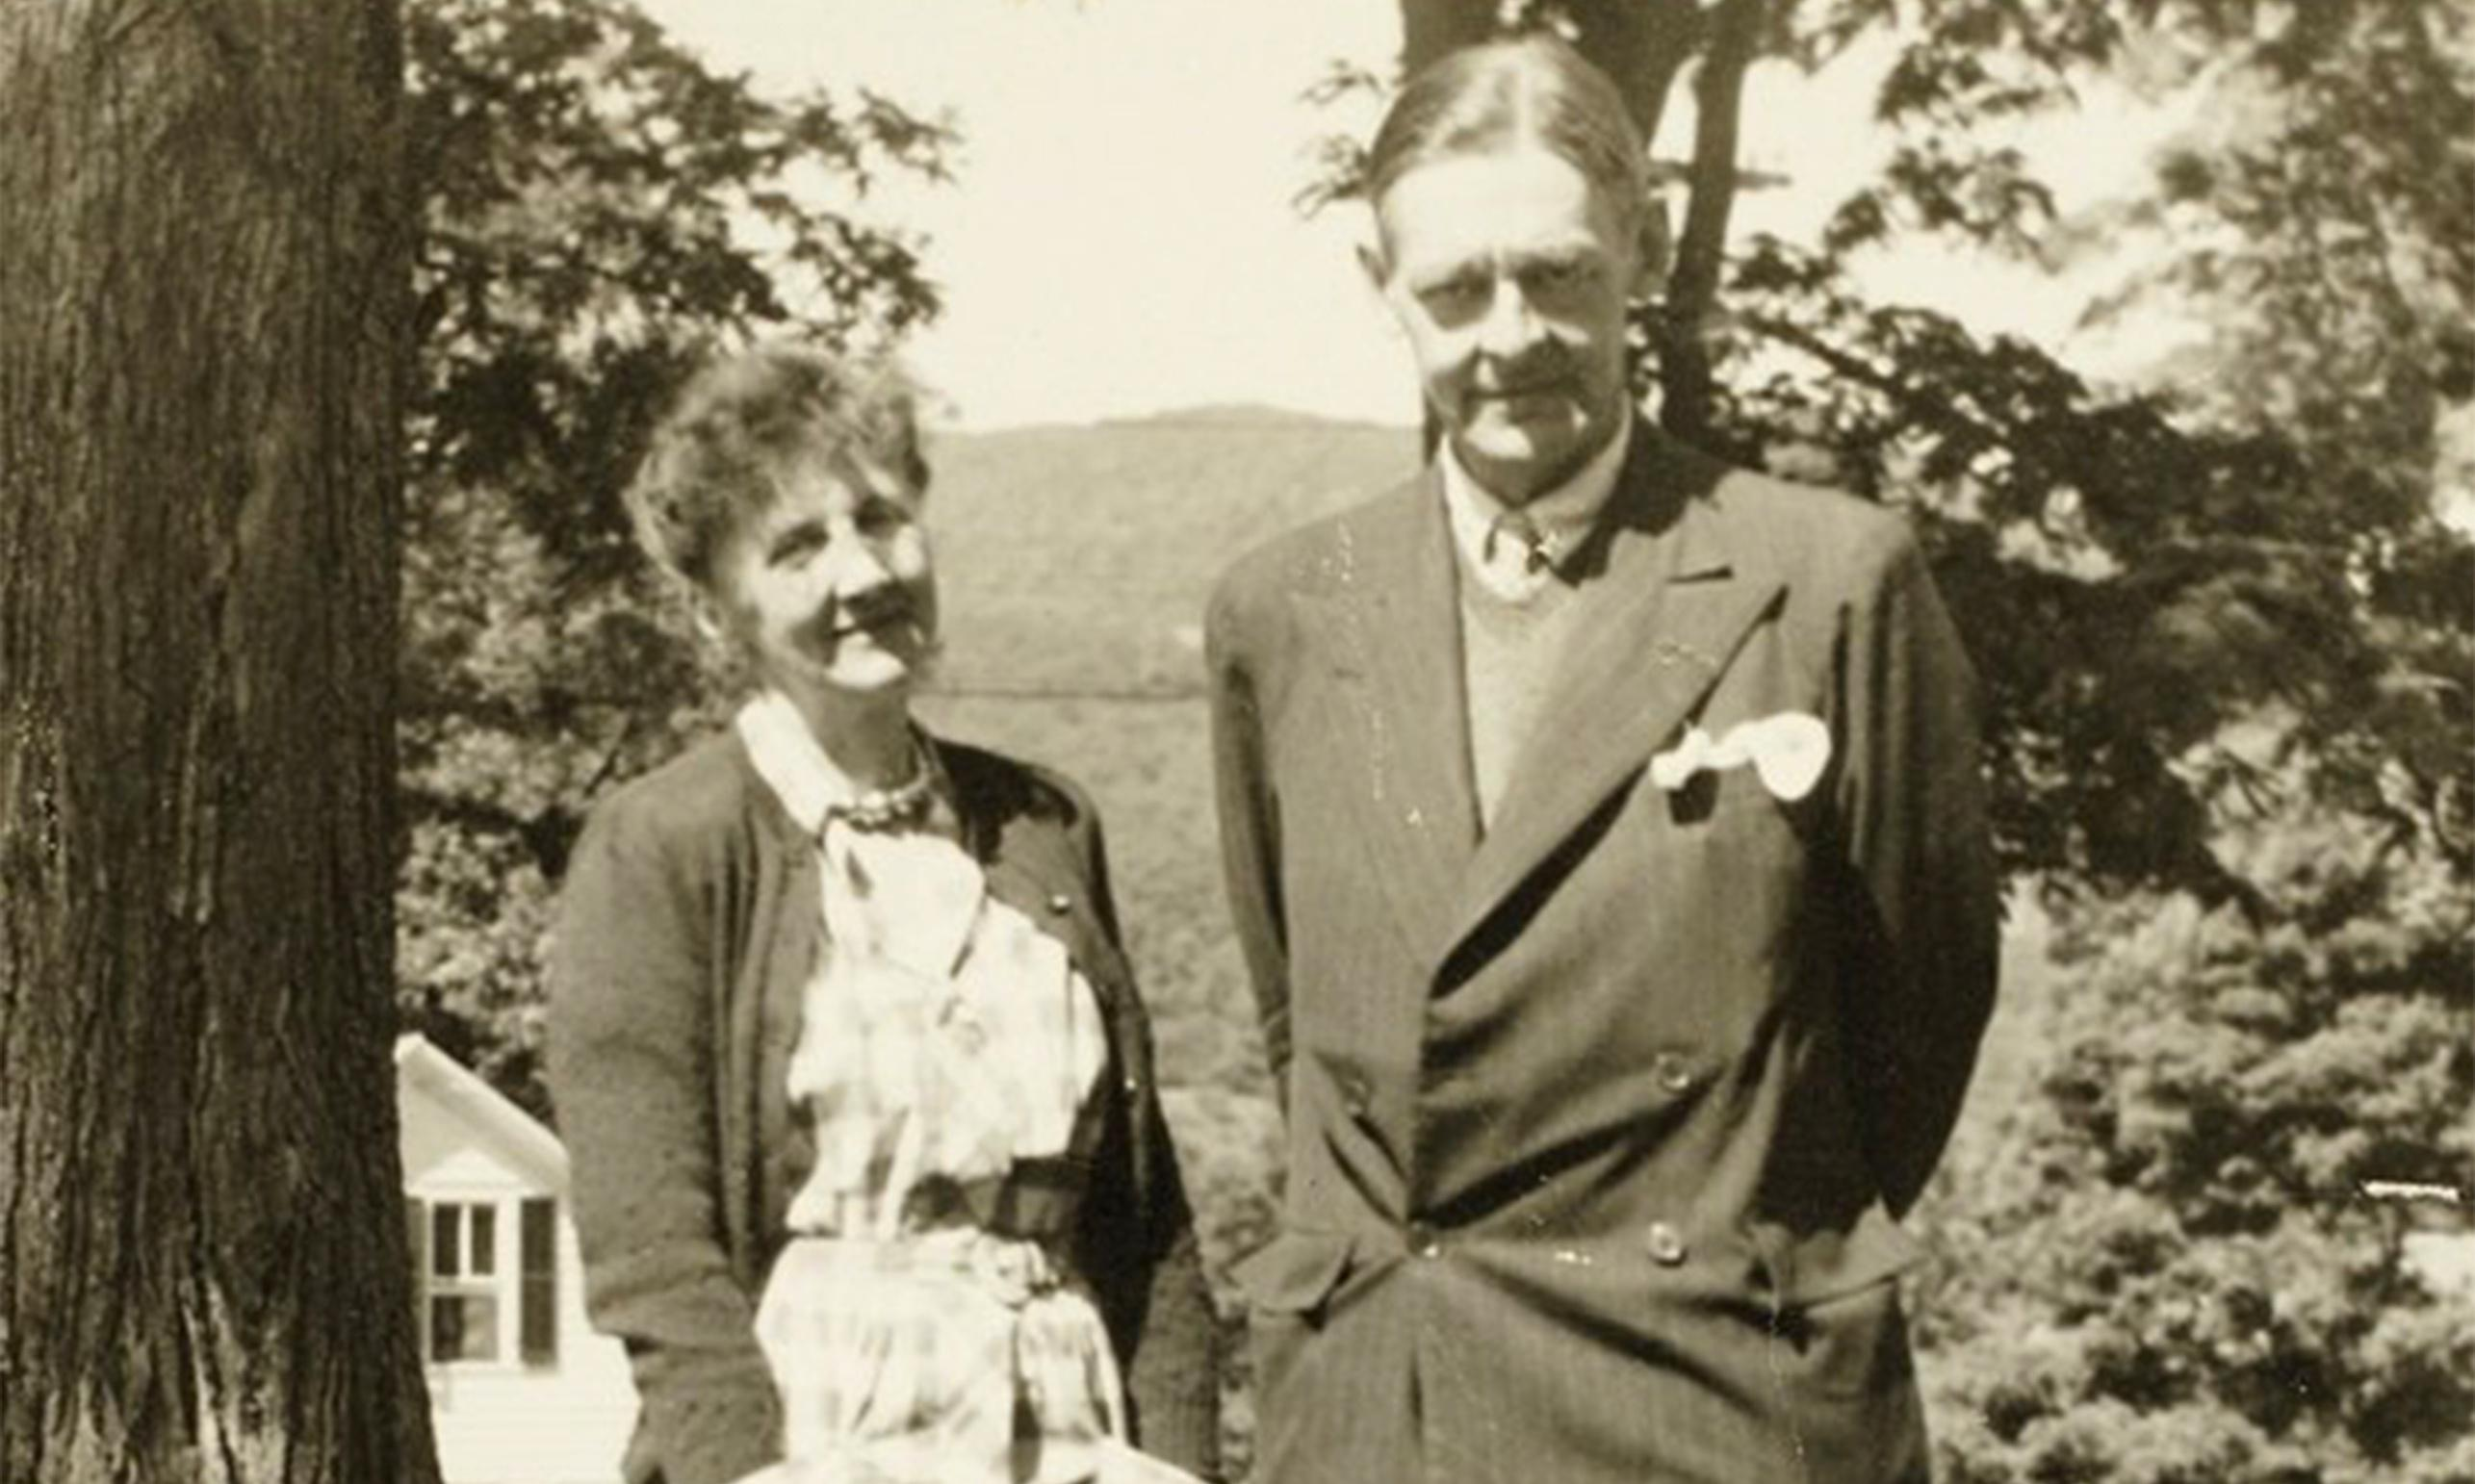 TS Eliot's intimate letters to confidante unveiled after 60 years